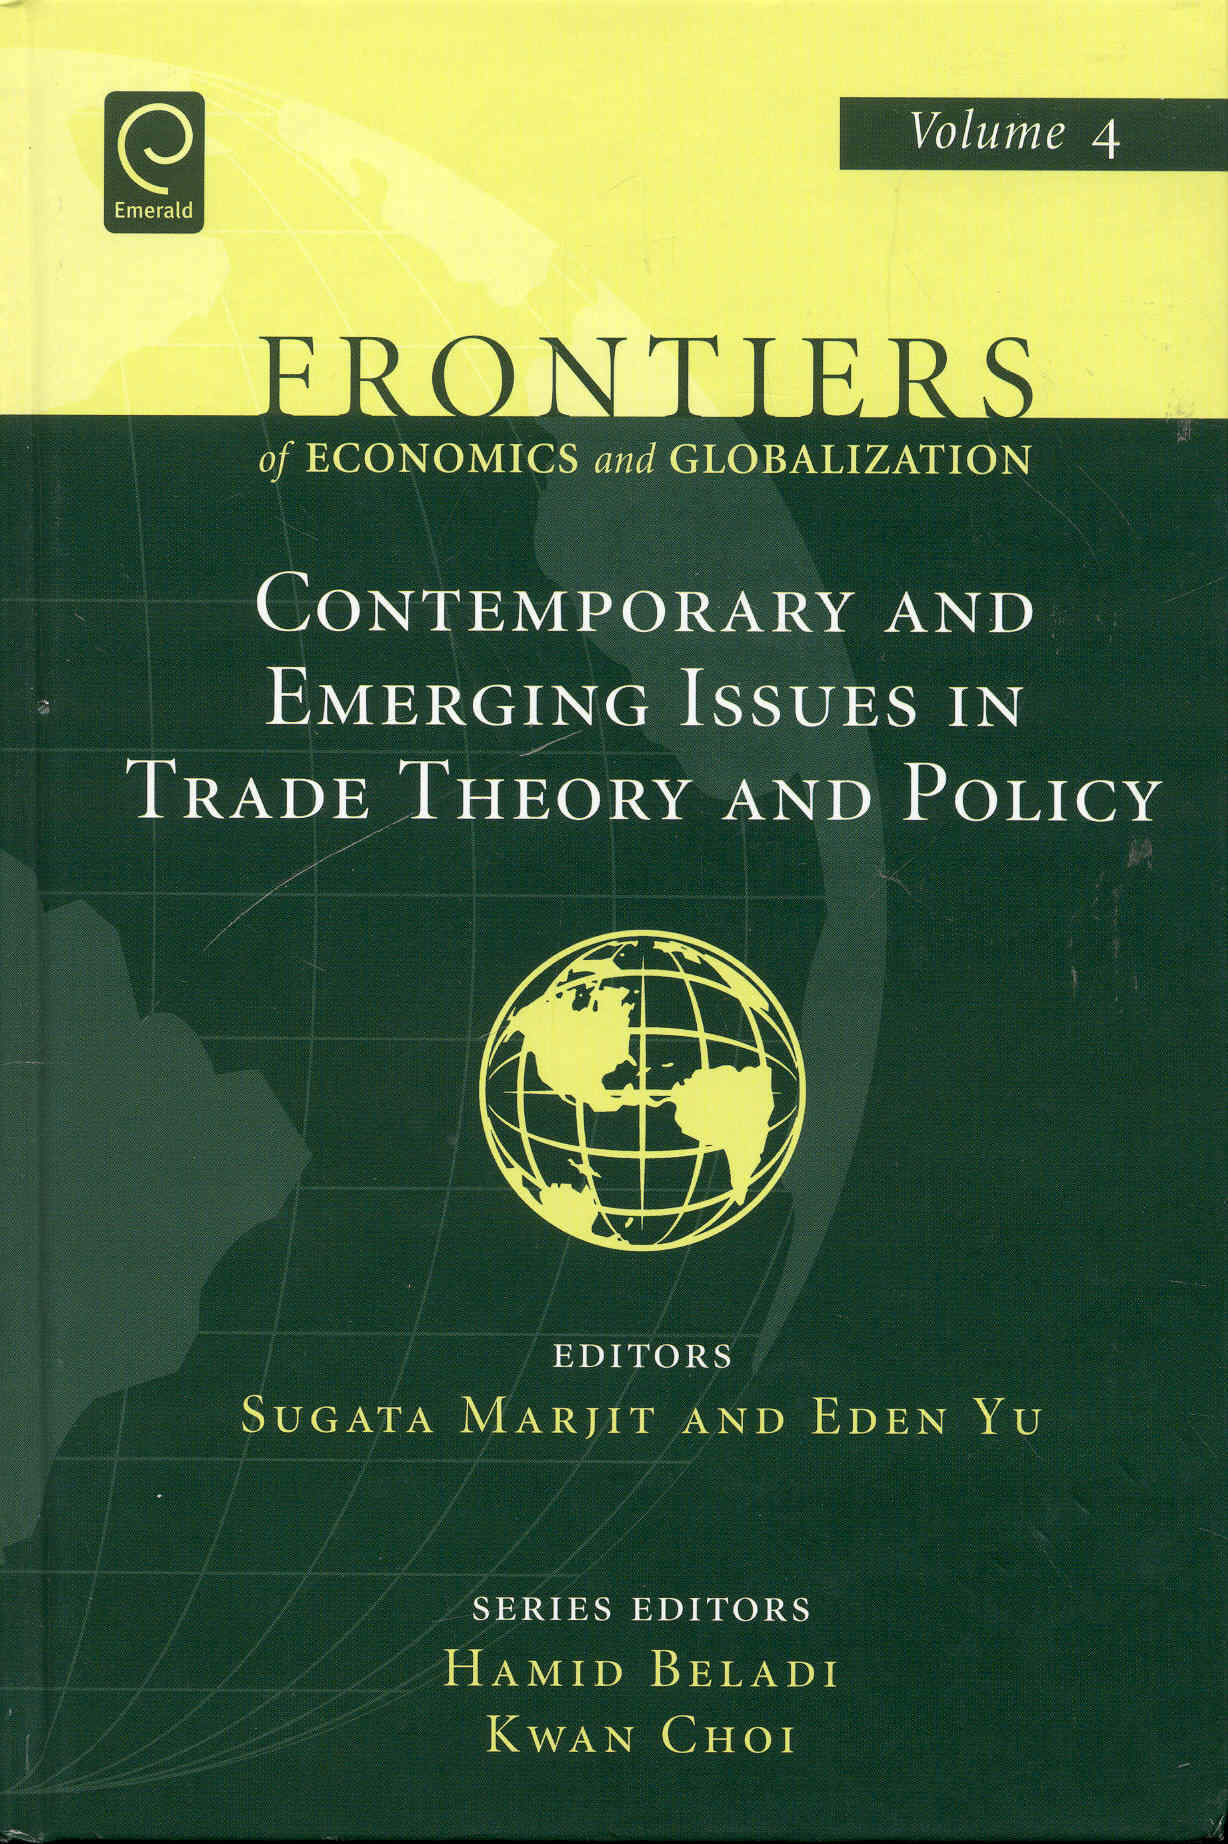 Image for Contemporary and Emerging Issues in Trade Theory and Policy (Frontiers of Economics and Globalization Volume 4)